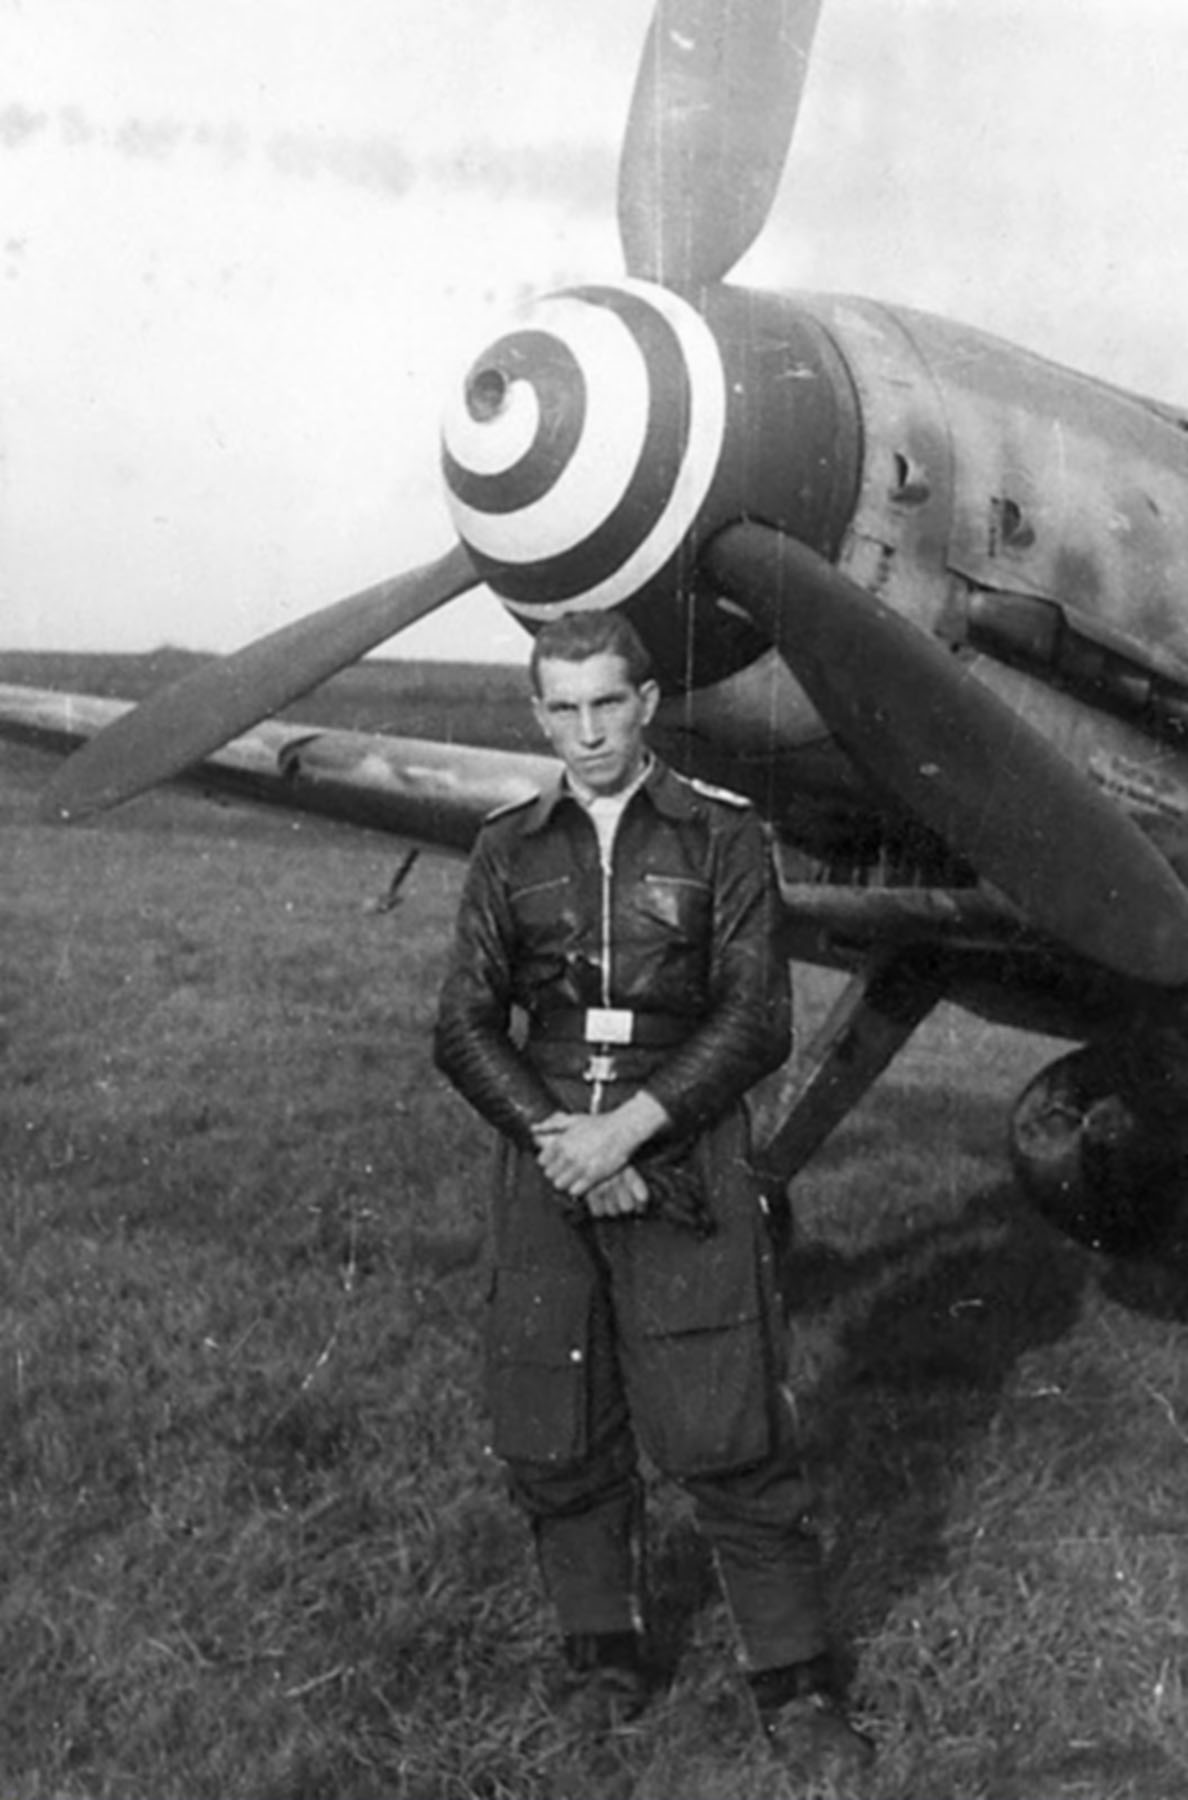 Aircrew Luftwaffe RVT pilot unknown unit along side his Bf 109G6R3 01